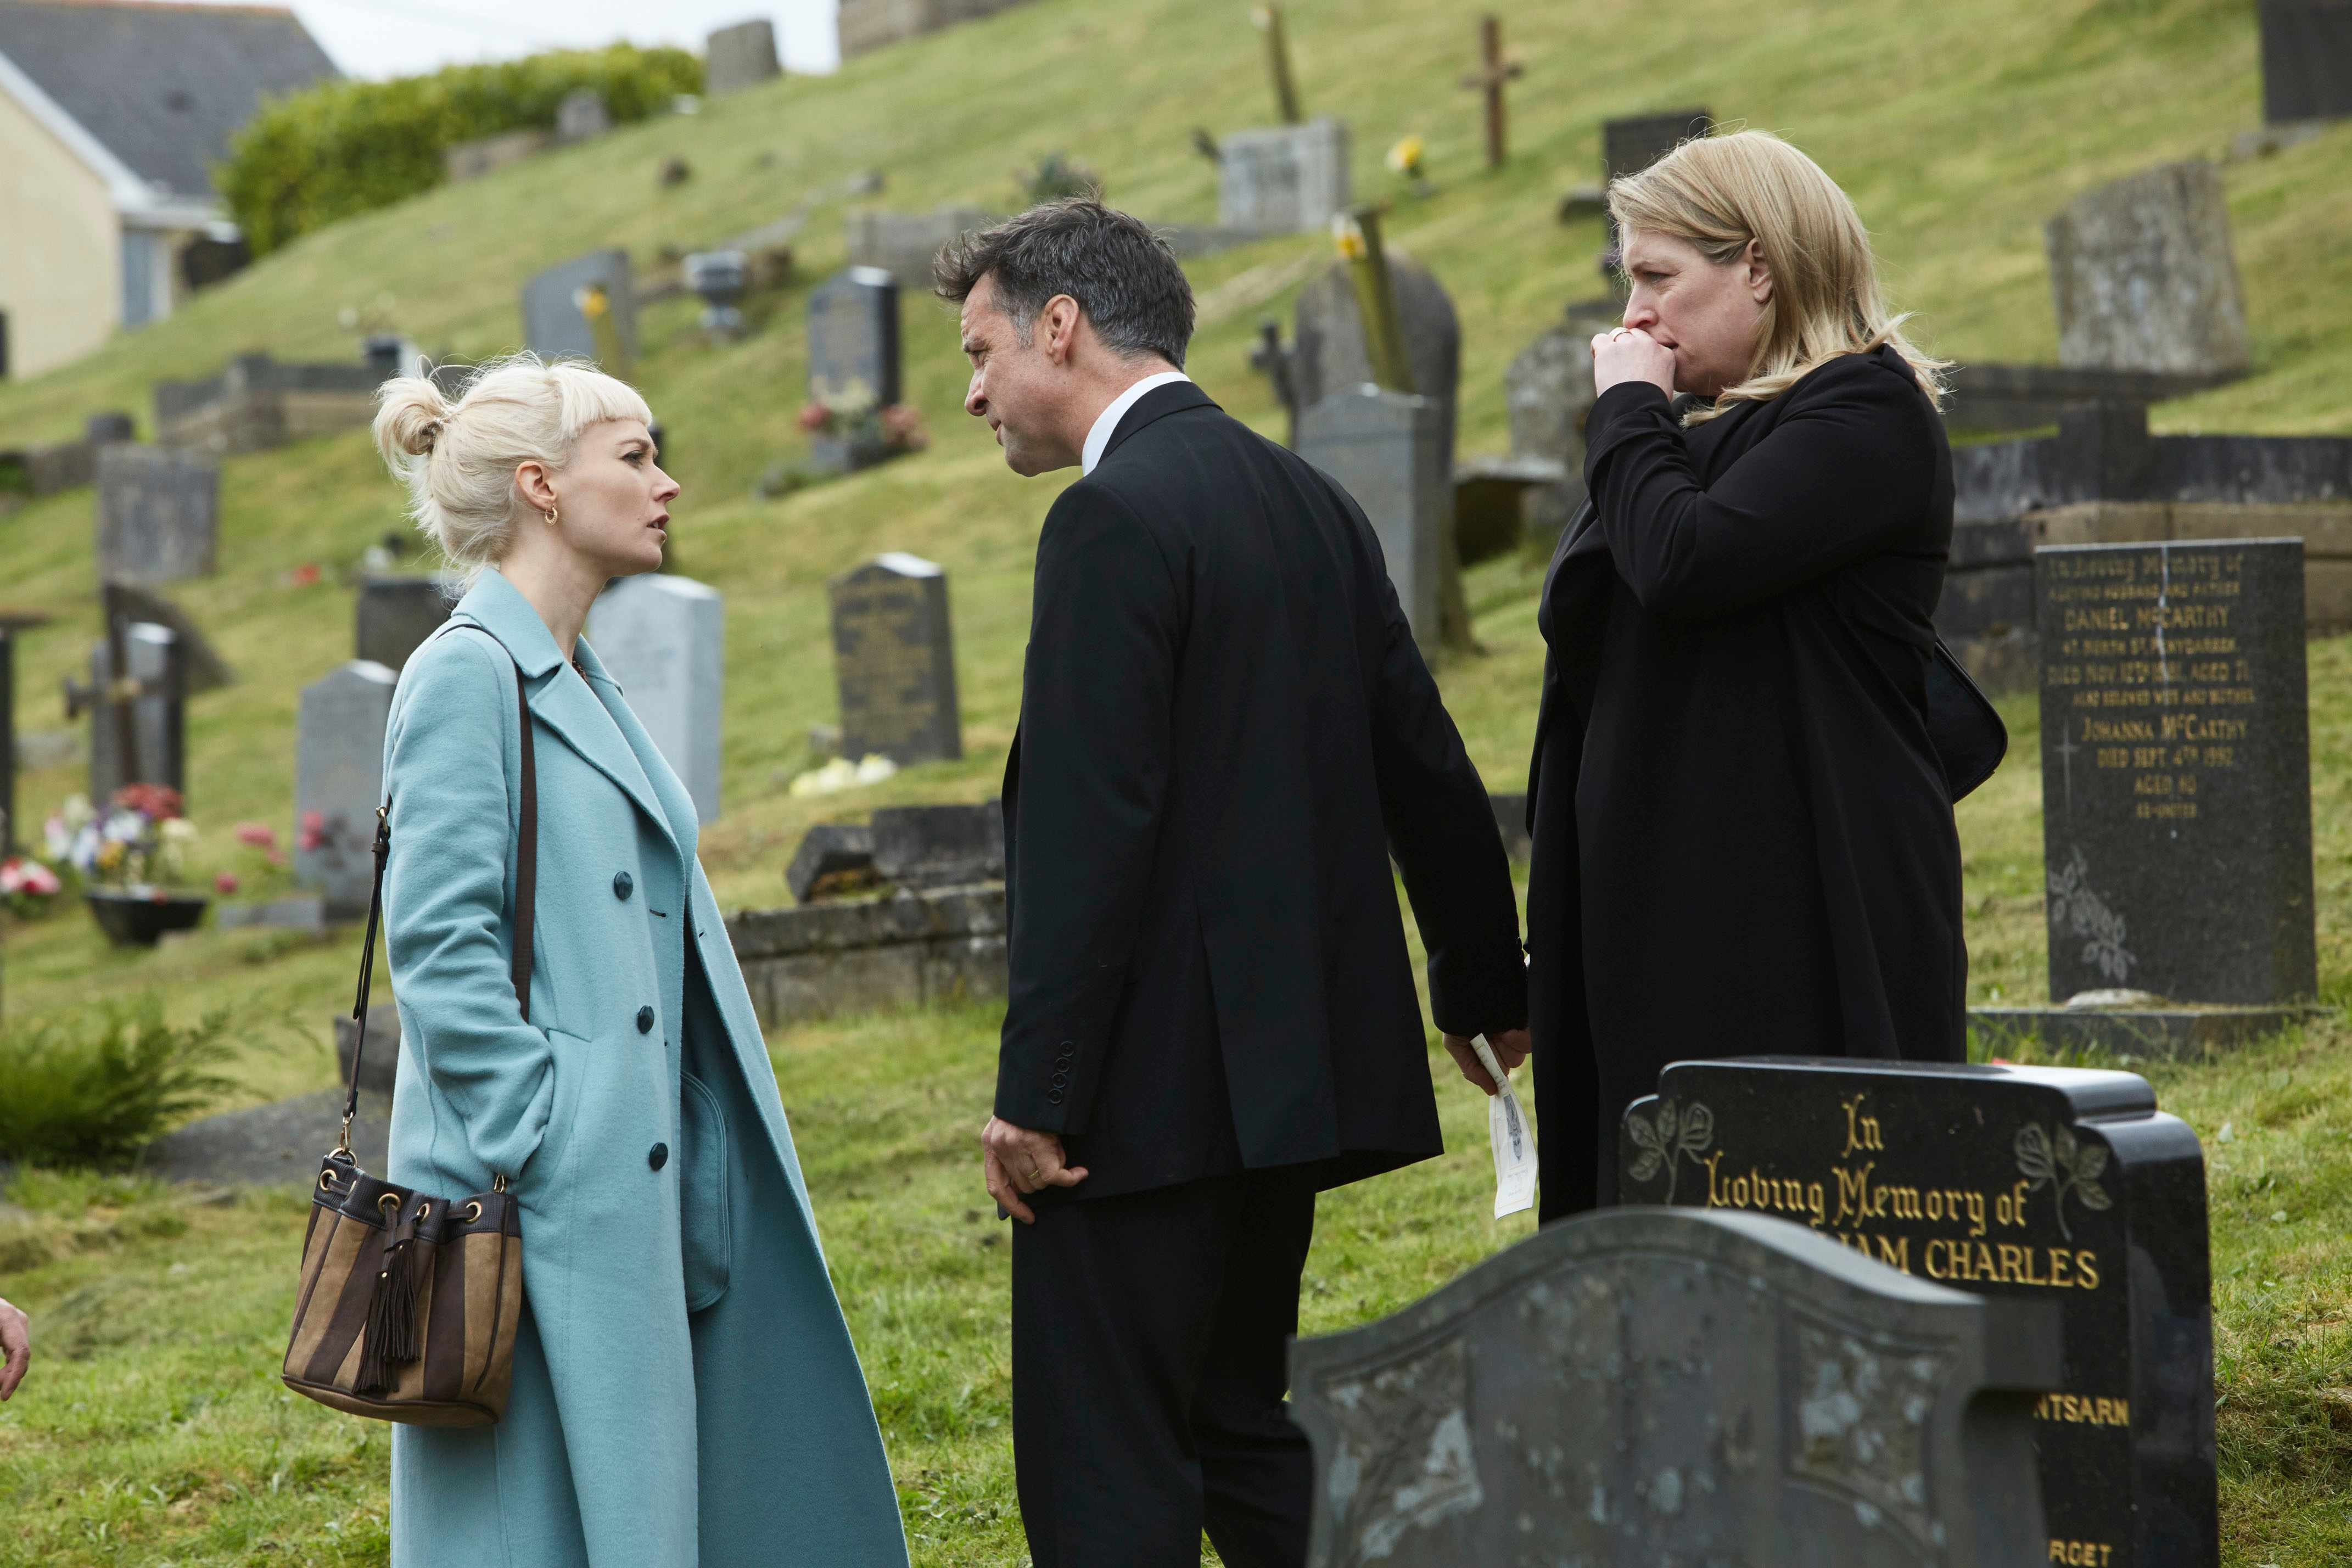 WARNING: Embargoed for publication until 00:00:01 on 22/01/2018 - Programme Name: Requiem - TX: n/a - Episode: Requiem - Ep1 (No. 1) - Picture Shows: +++Embargoed until Monday January 22nd, 2018+++ Matilda (LYDIA WILSON), Aron (RICHARD HARRINGTON), Rose (CLAIRE RUSHBROOK) - (C) New Pictures - Photographer: Simon Ridgway